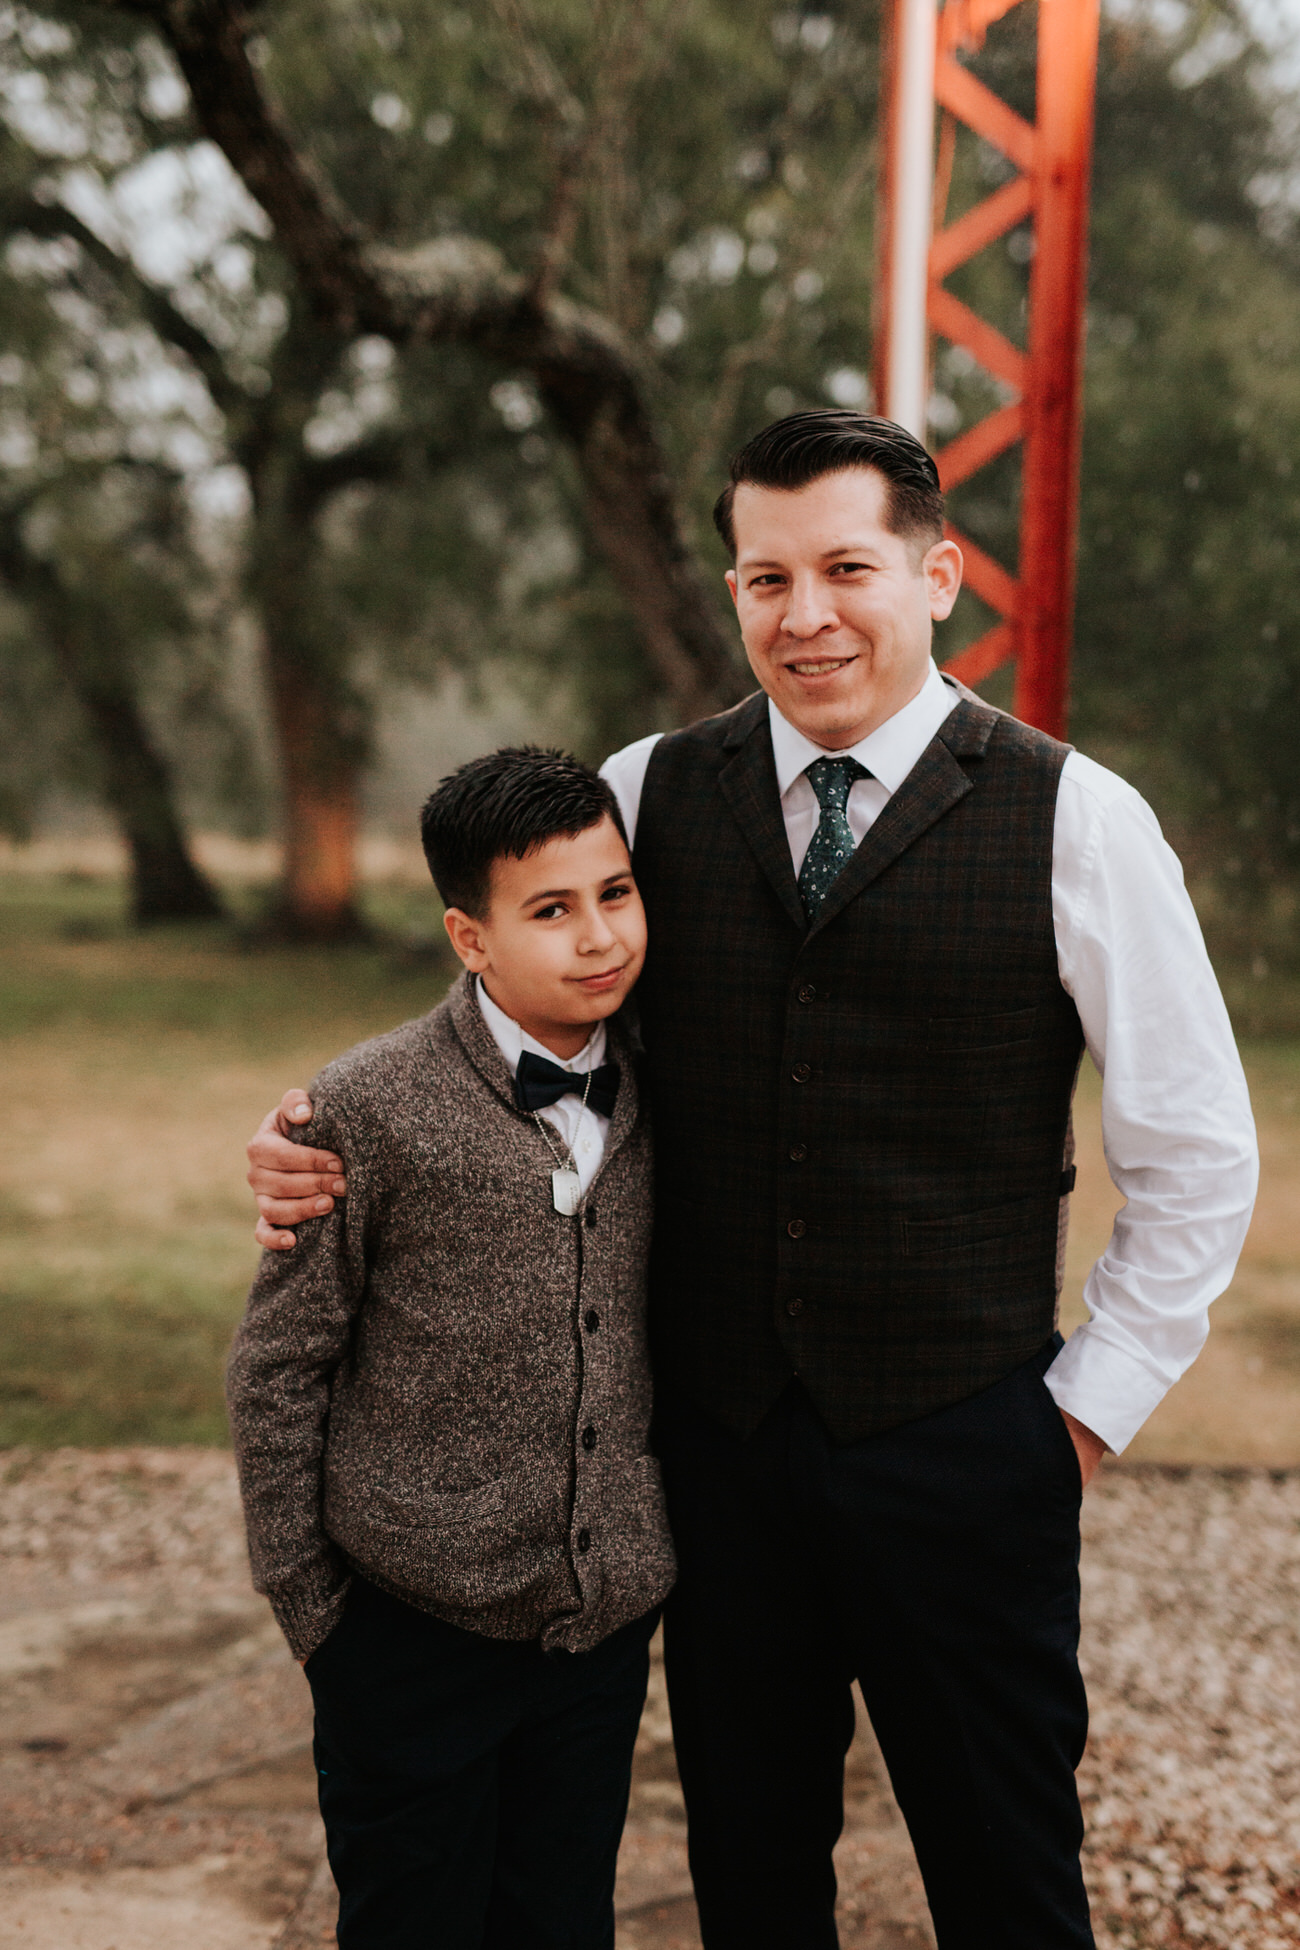 Groom with a child at Christmas wedding